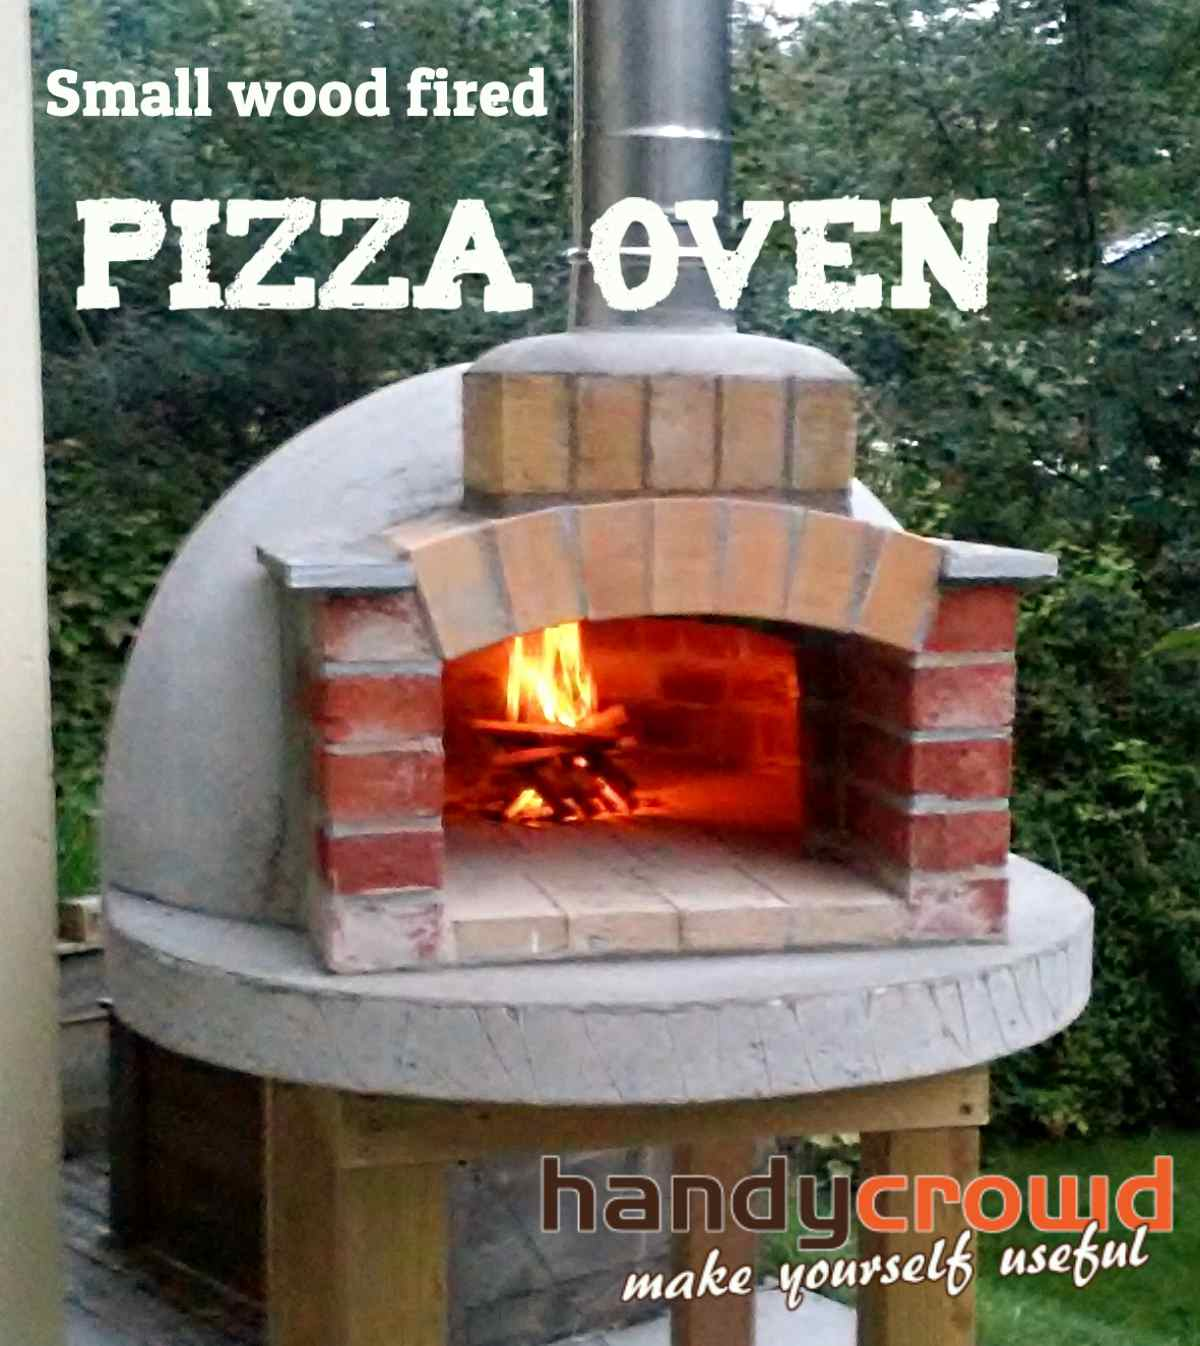 Laying brick oven with their own hands 100